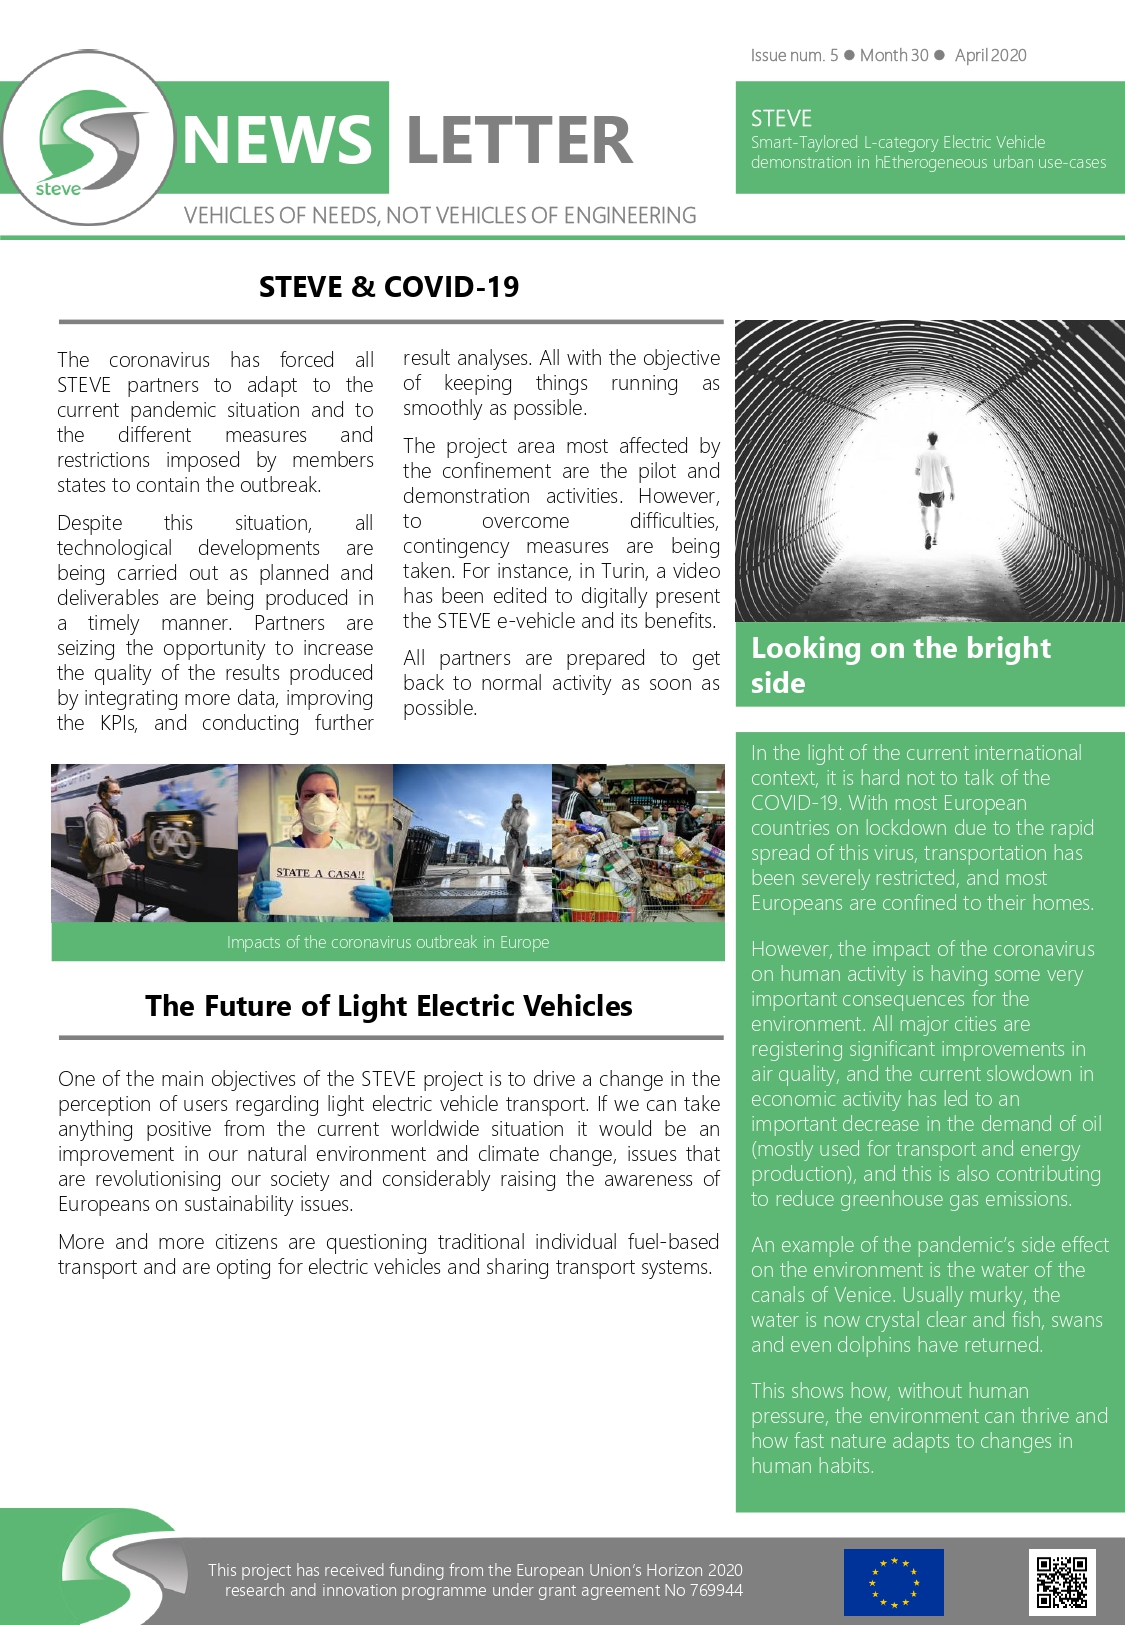 Fifth STEVE Newsletter